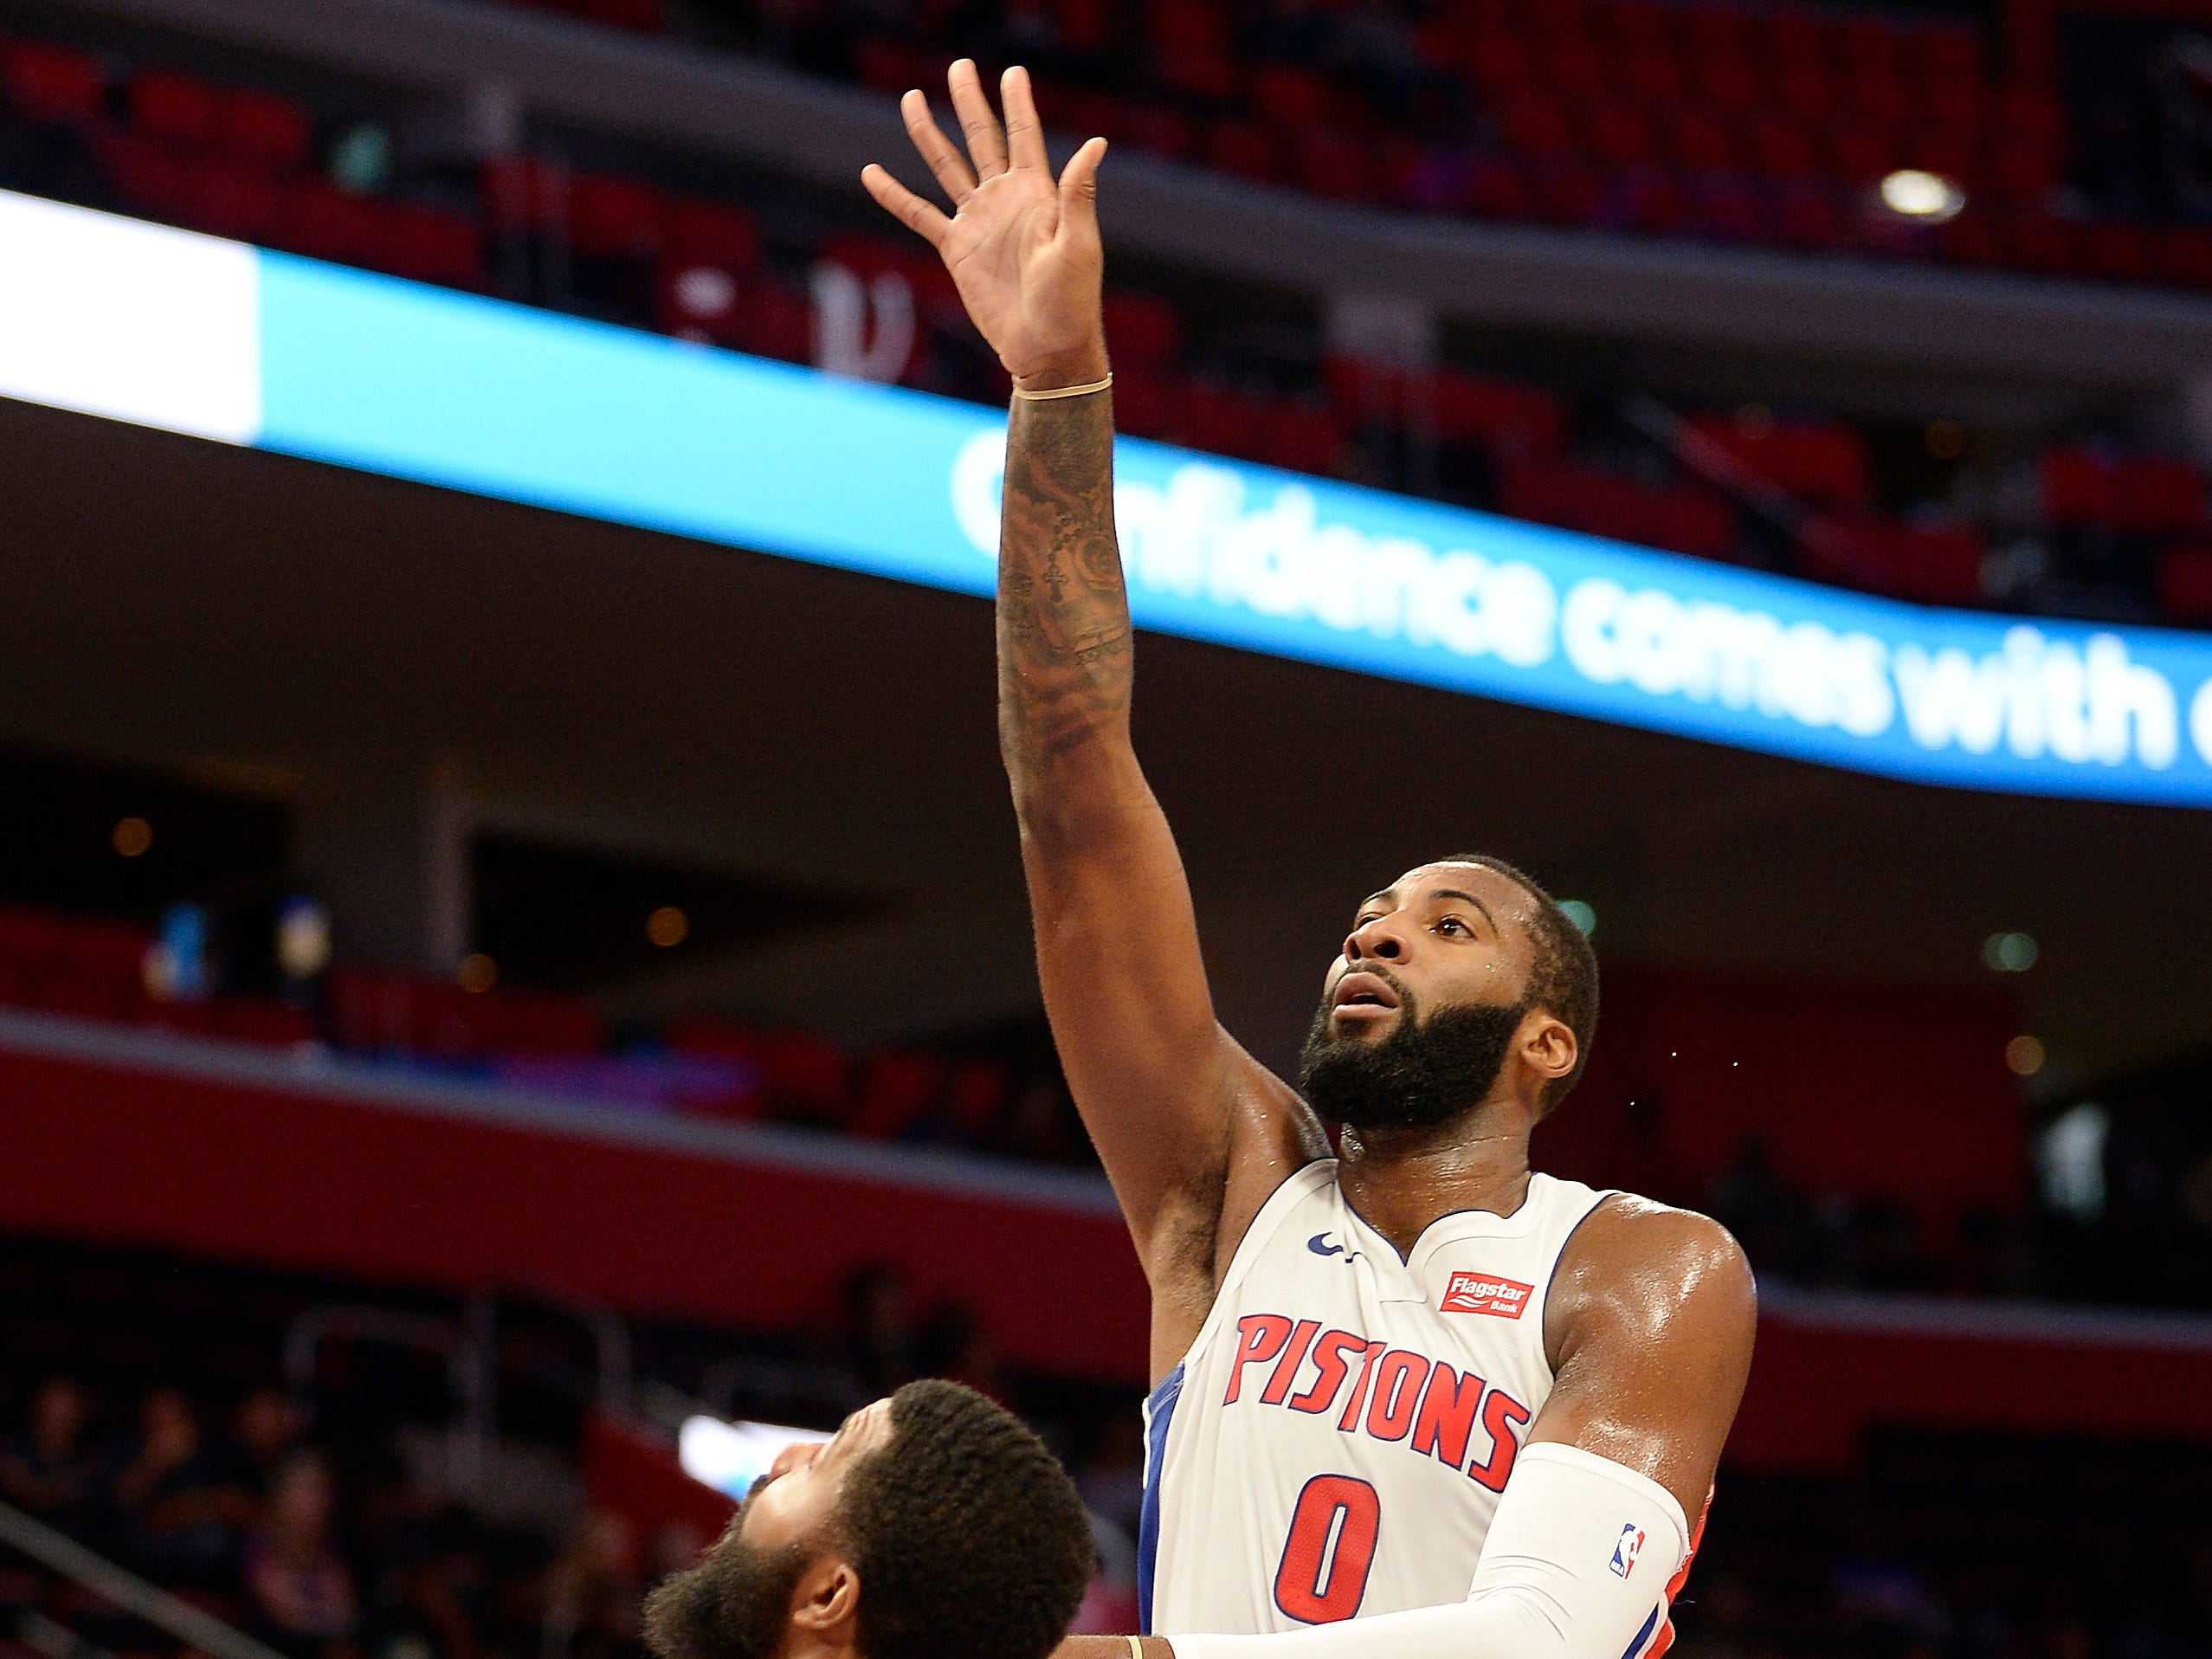 Pistons' Andre Drummond scores over Wizards' Markieff Morris in the first quarter.